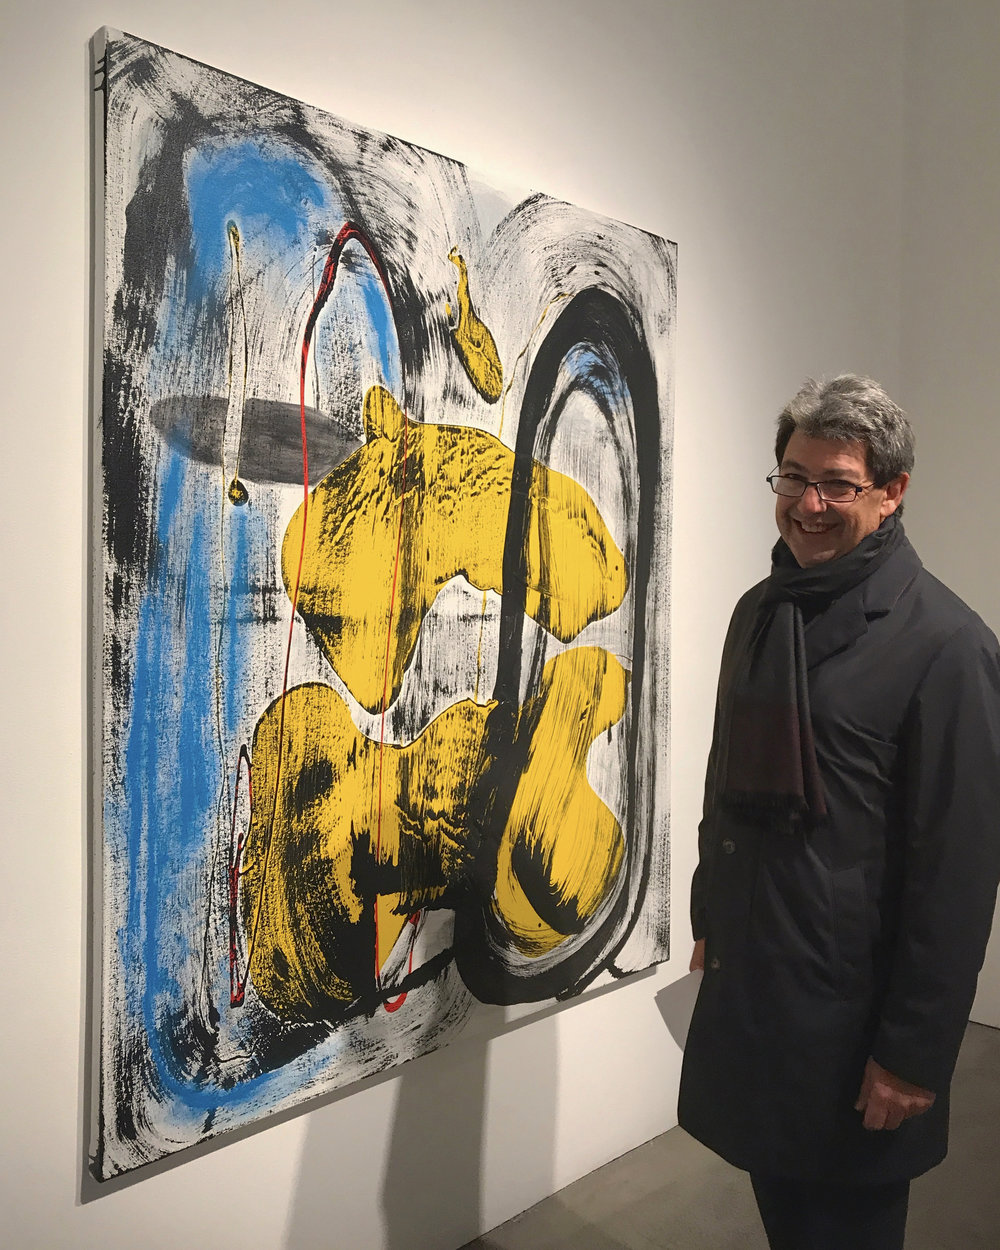 Paul Schimmel in front of my work!  A giant in our art world...